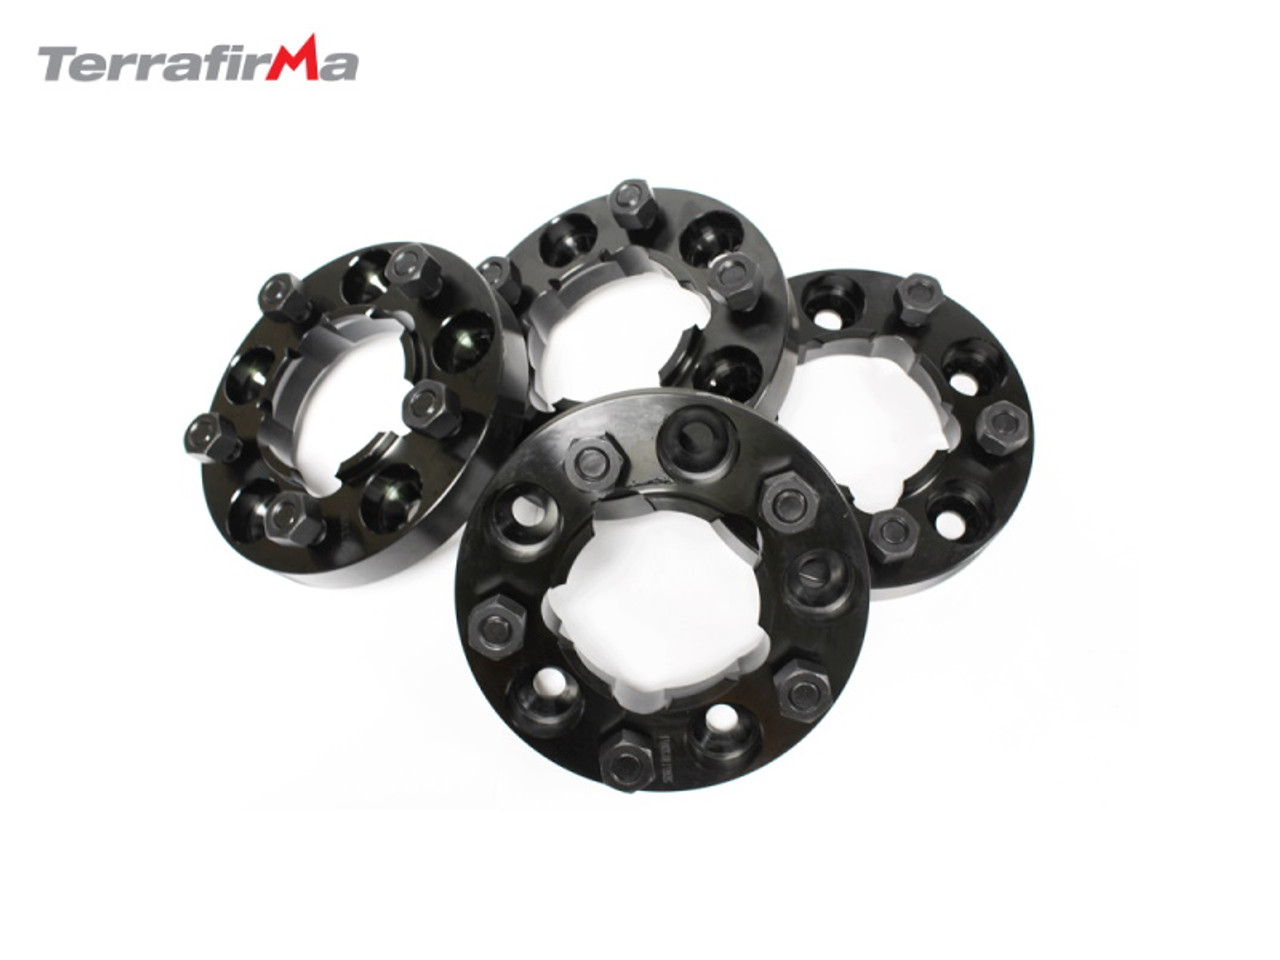 TERRAFIRMA 30MM BLACK ALLOY WHEEL SPACERS DEF/D1/RANGE ROVER CLASSIC